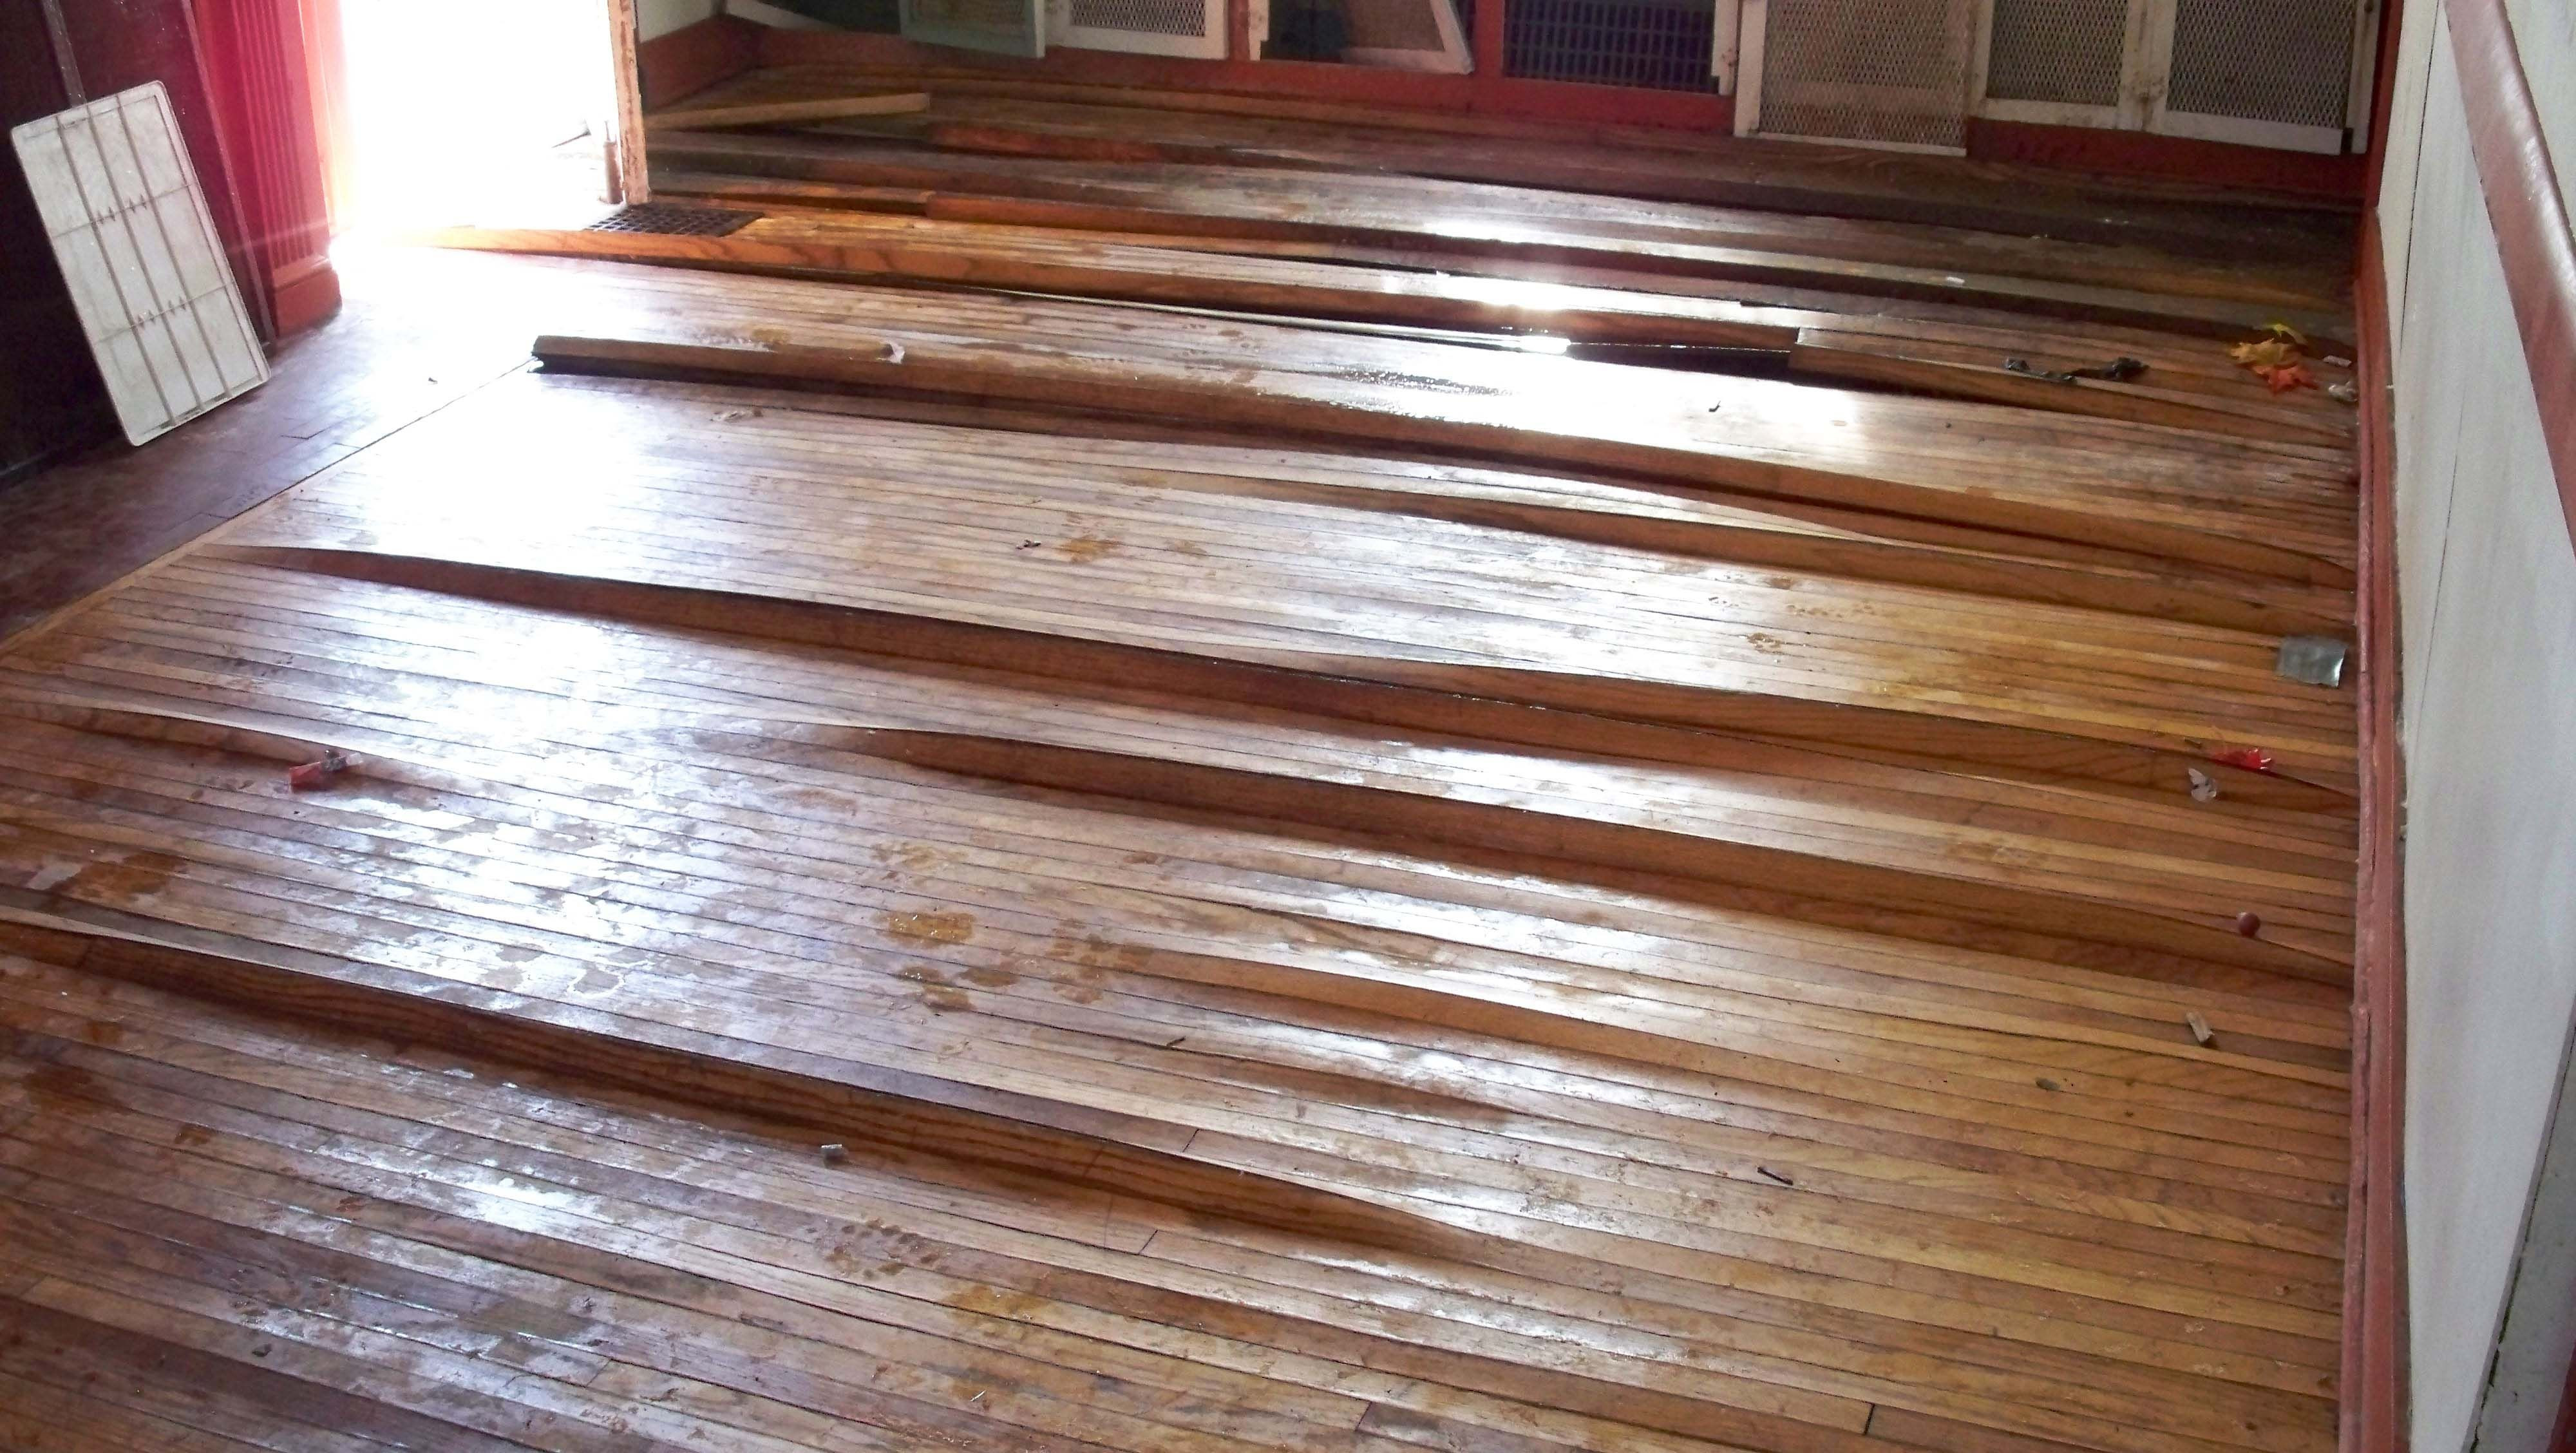 hardwood floor stains 2017 of hardwood floor water damage warping hardwood floors pinterest in hardwood floor water damage warping